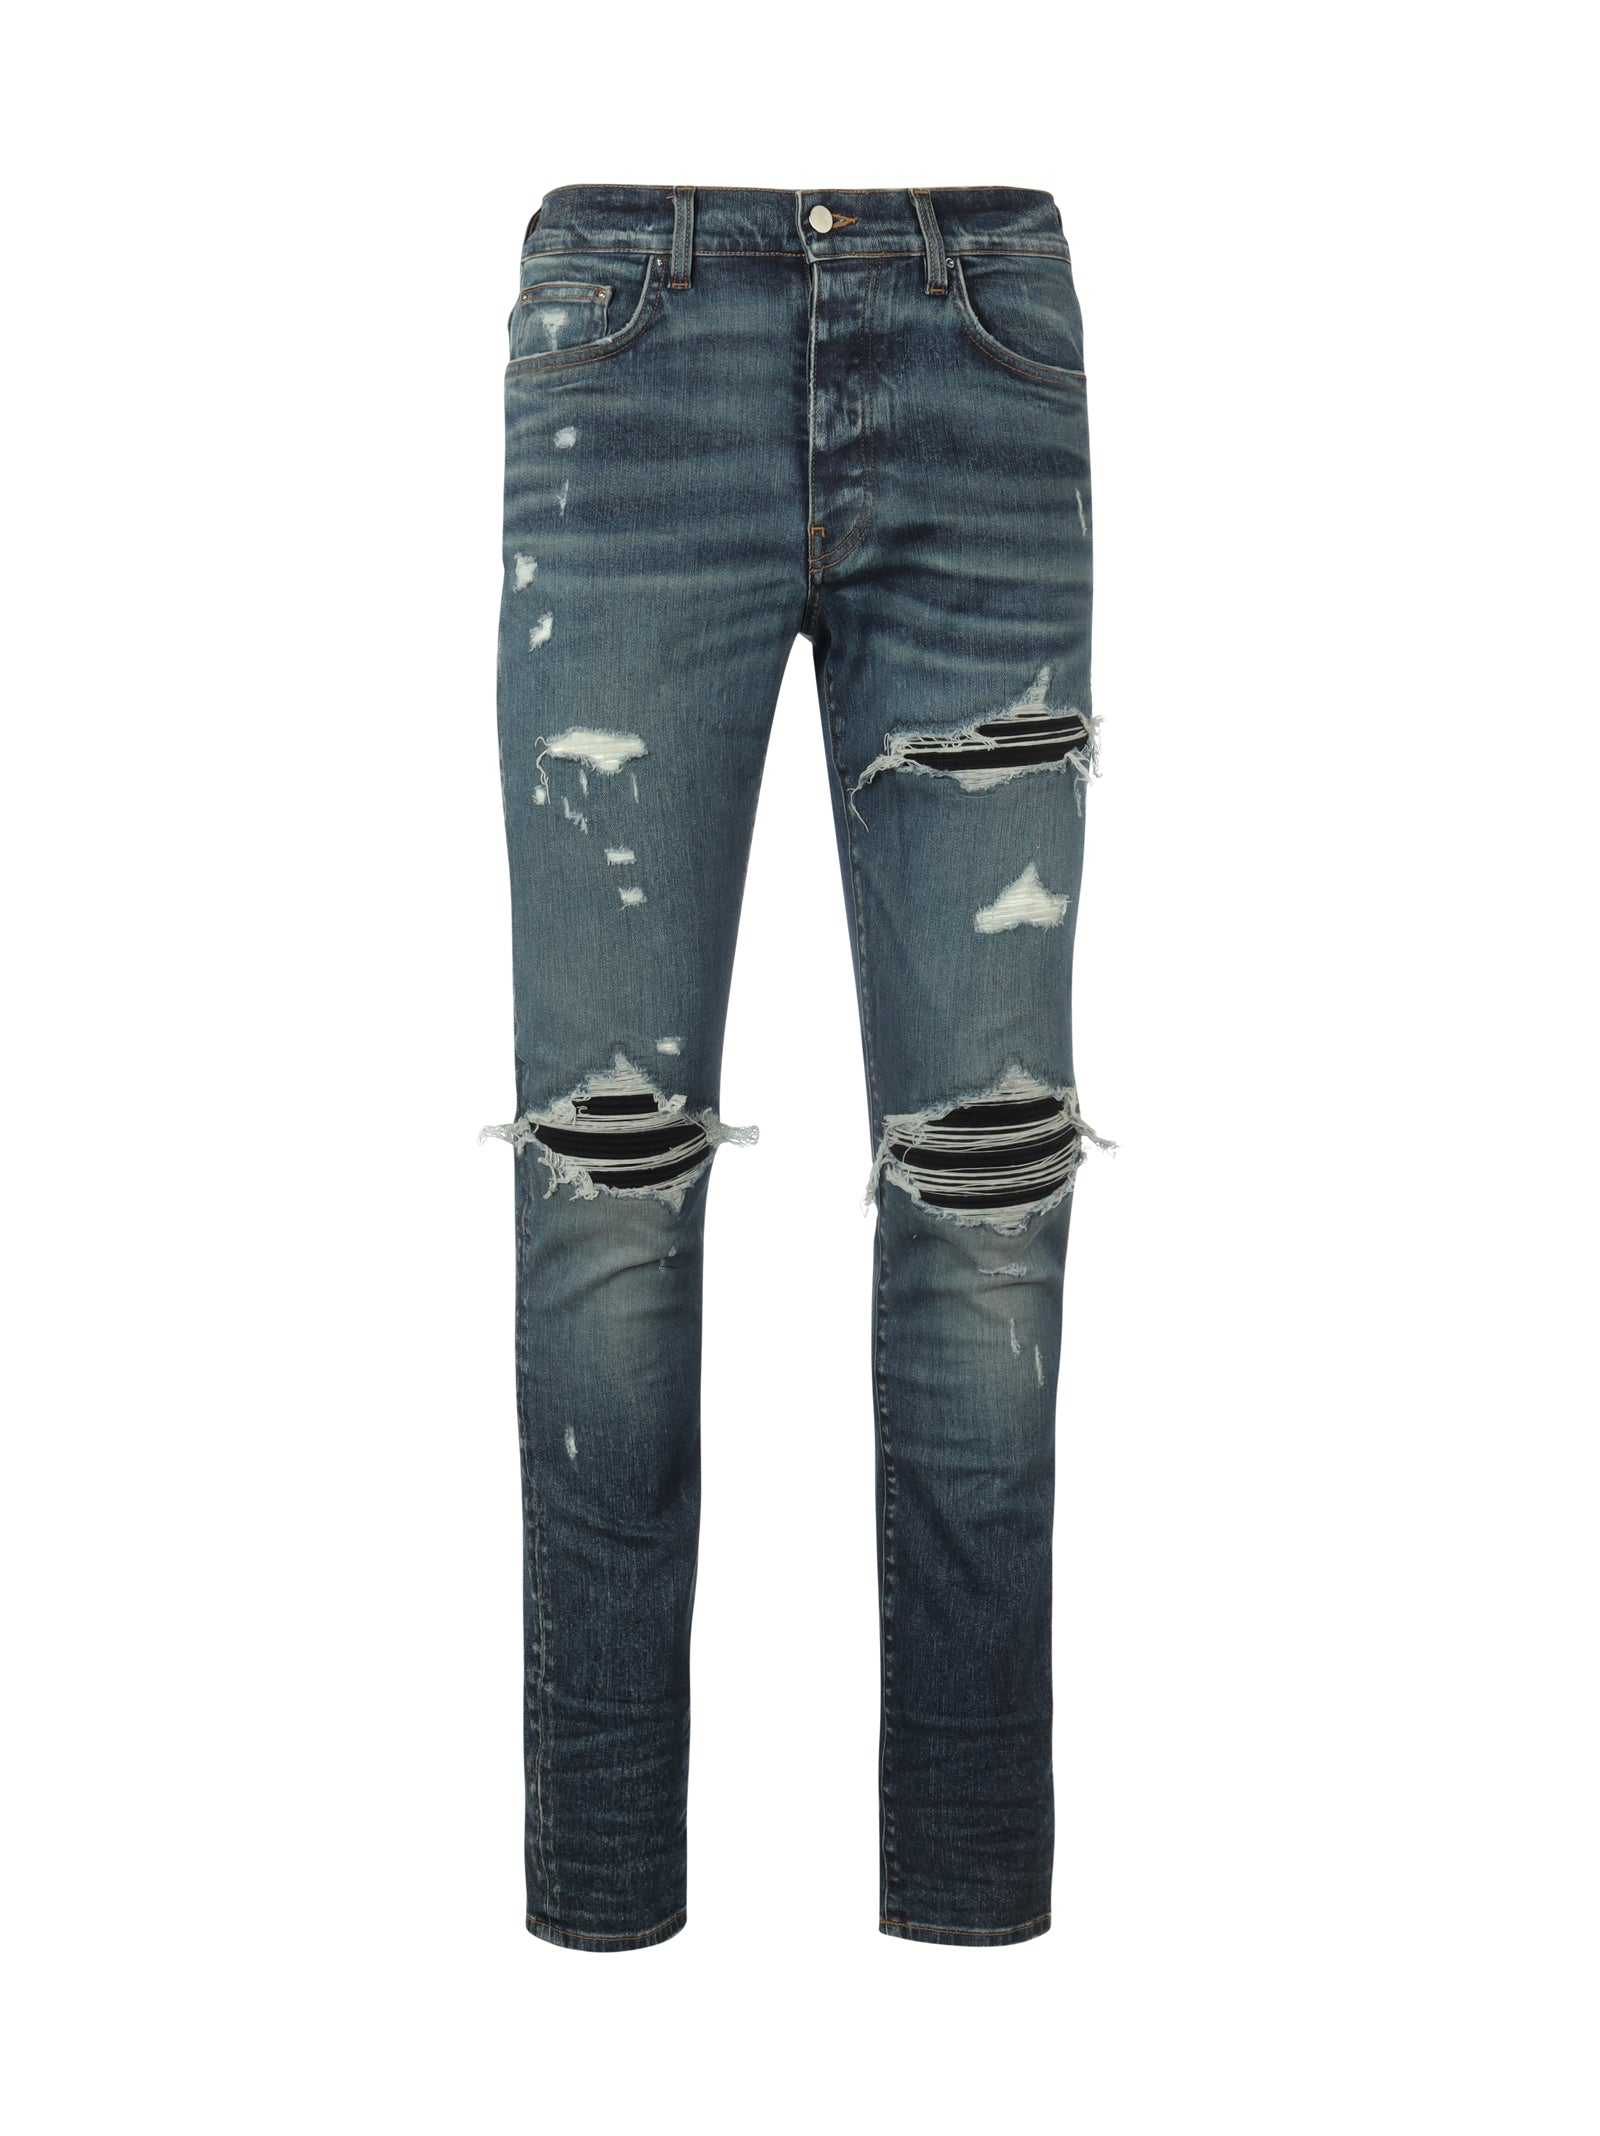 stonewashed distressed-finish jeans